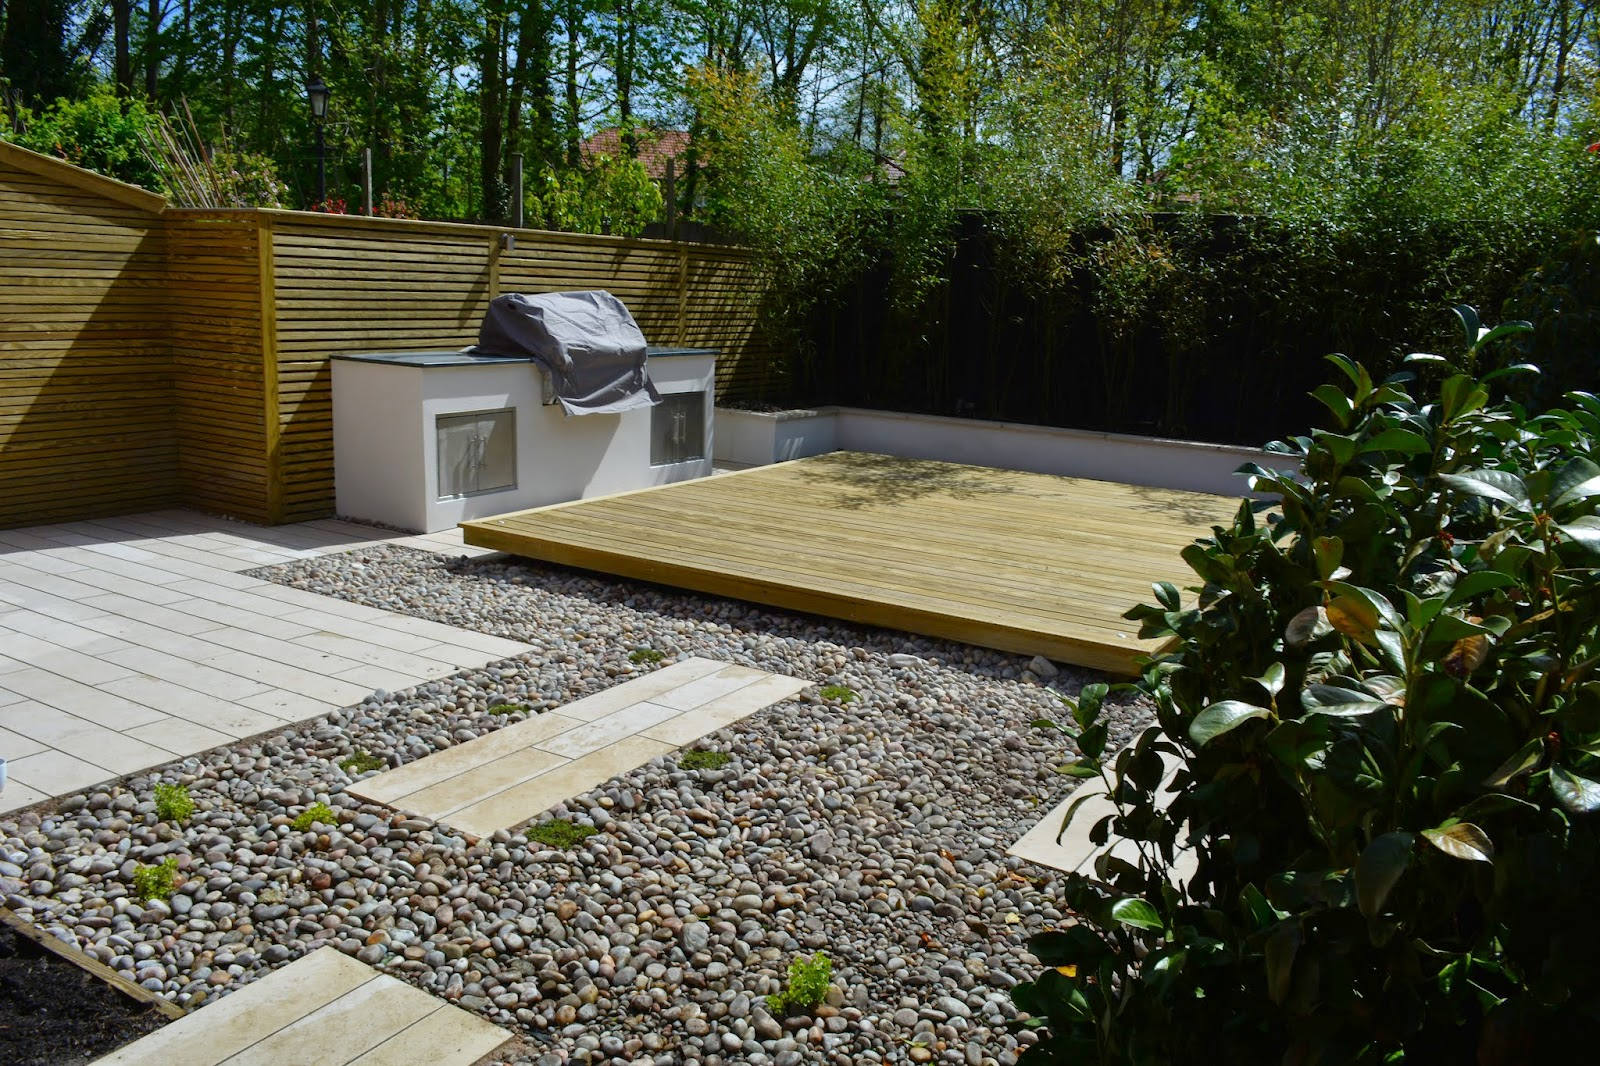 David Keegans Garden Design Blog New Garden Design Project In